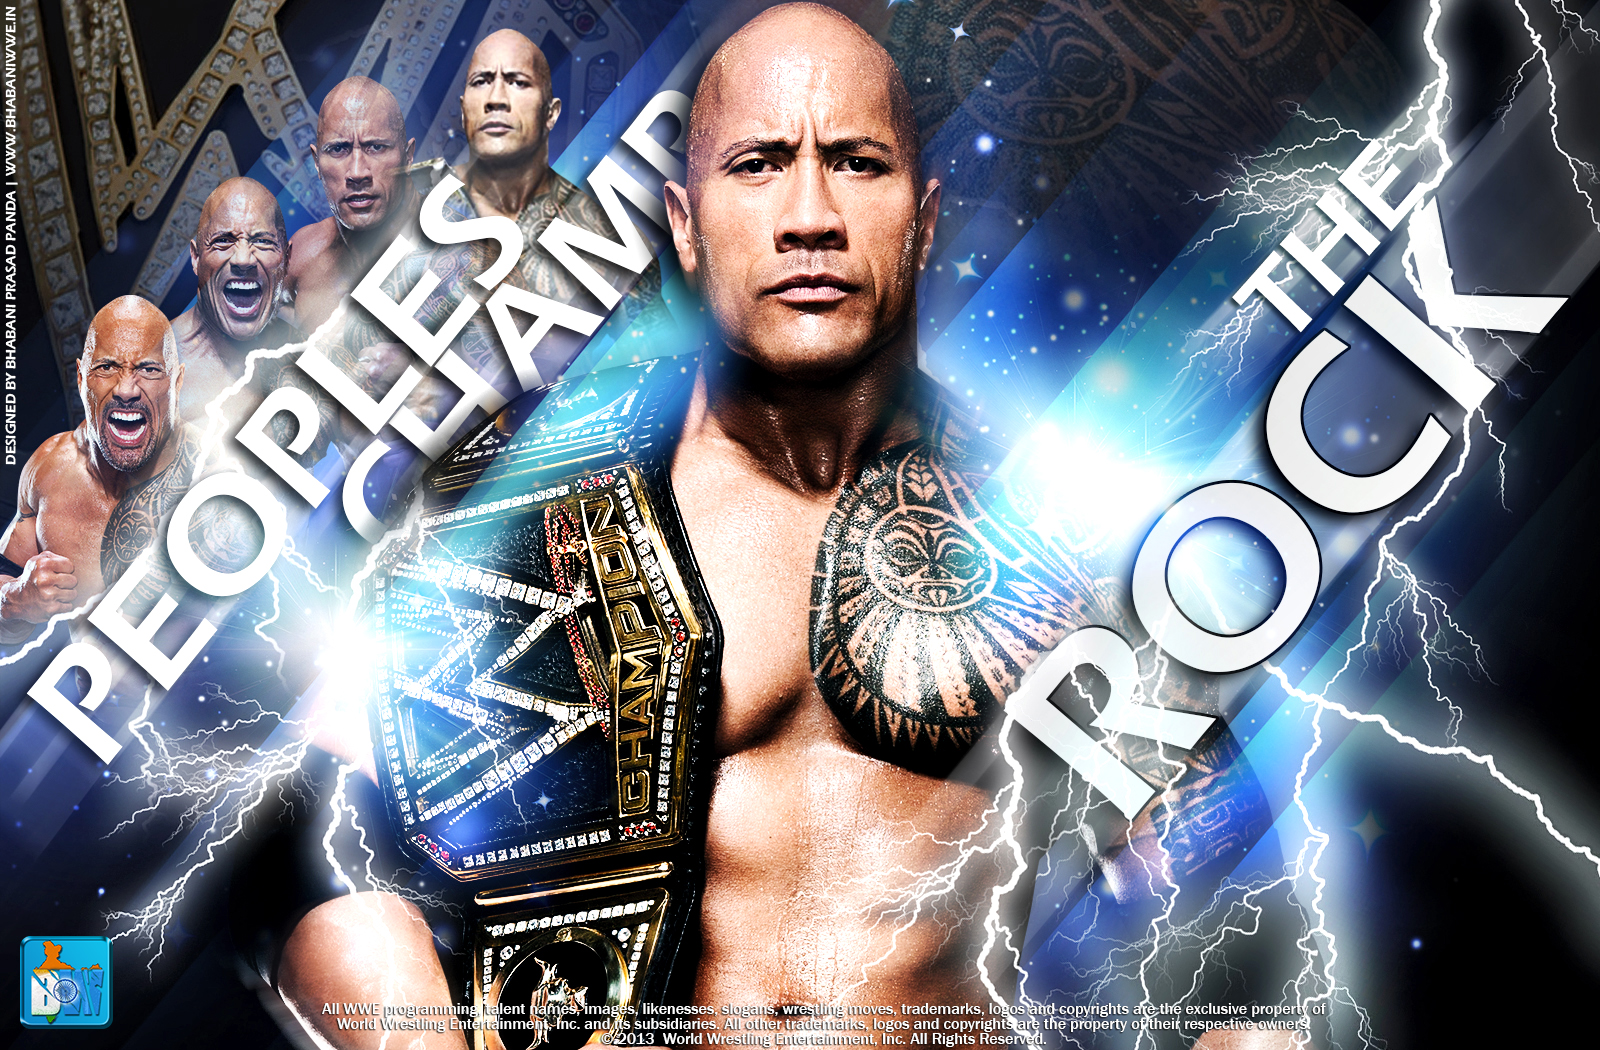 The Rock HD Wallpapers 2013-2014